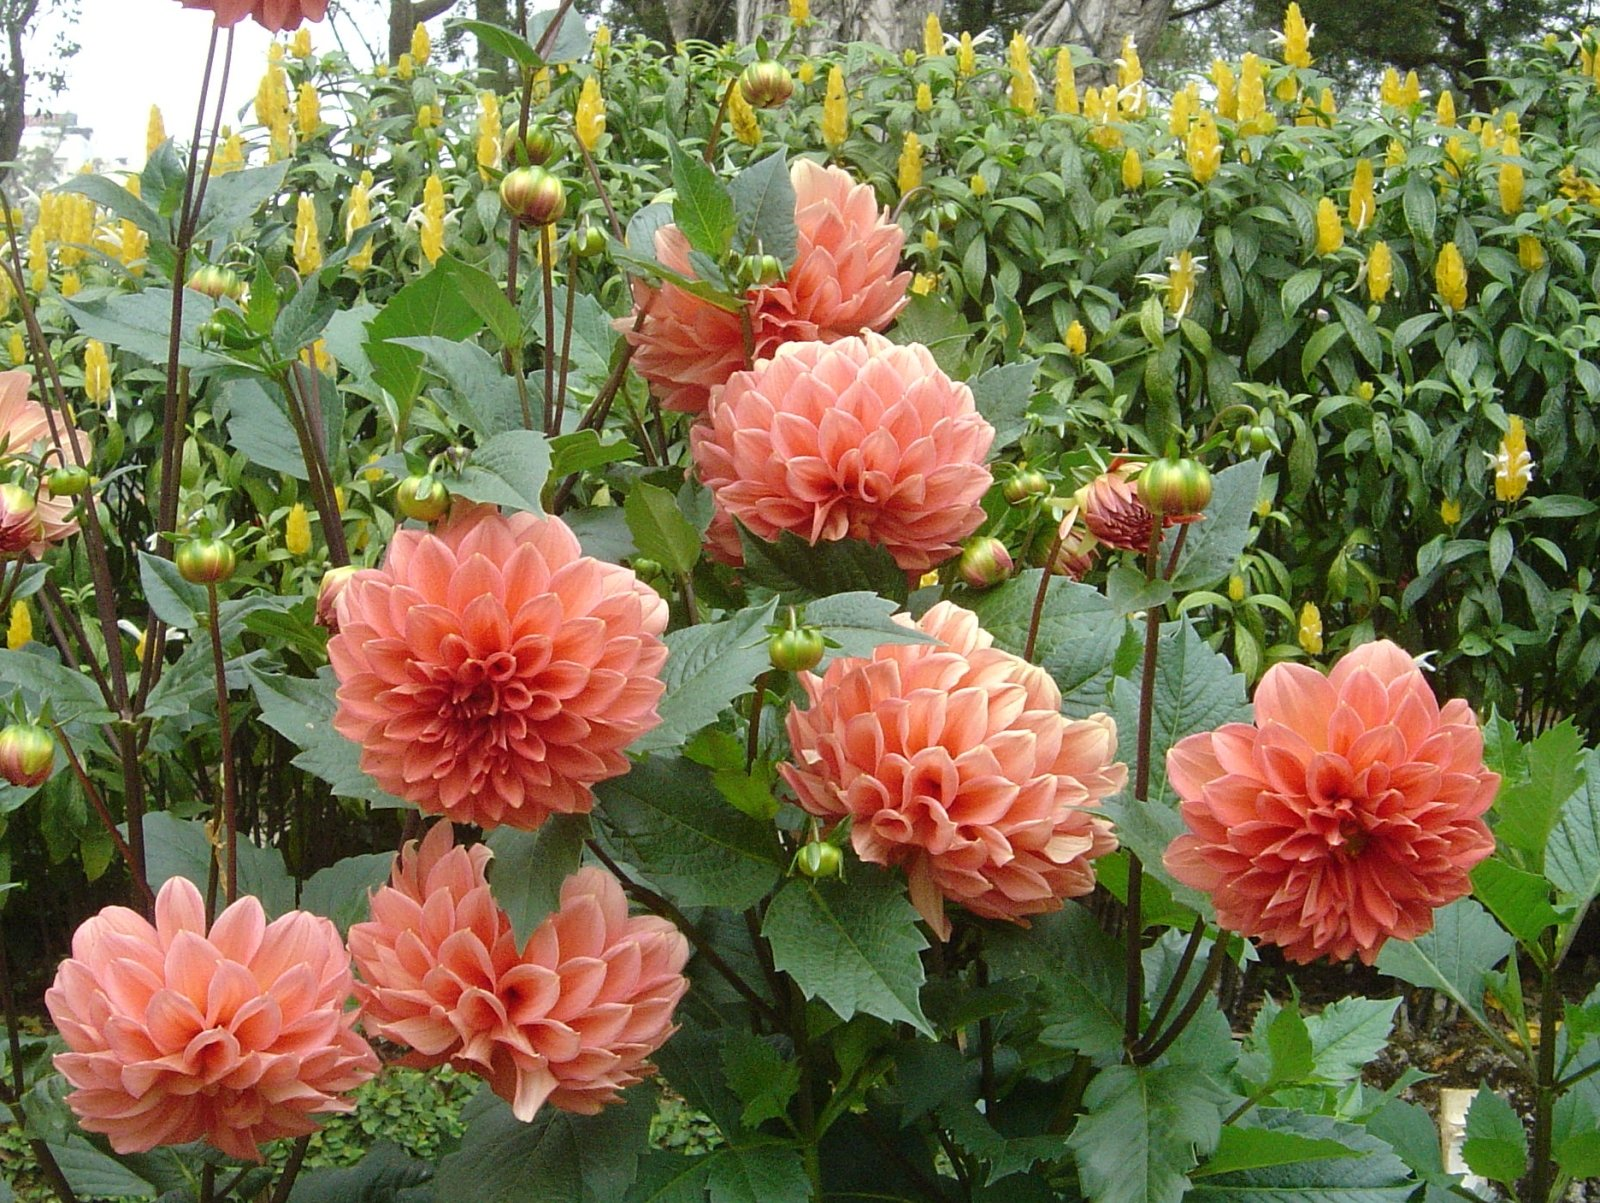 Dahlia Flower Dahlia Flower Wallpaper Free Download Dahlia Flower